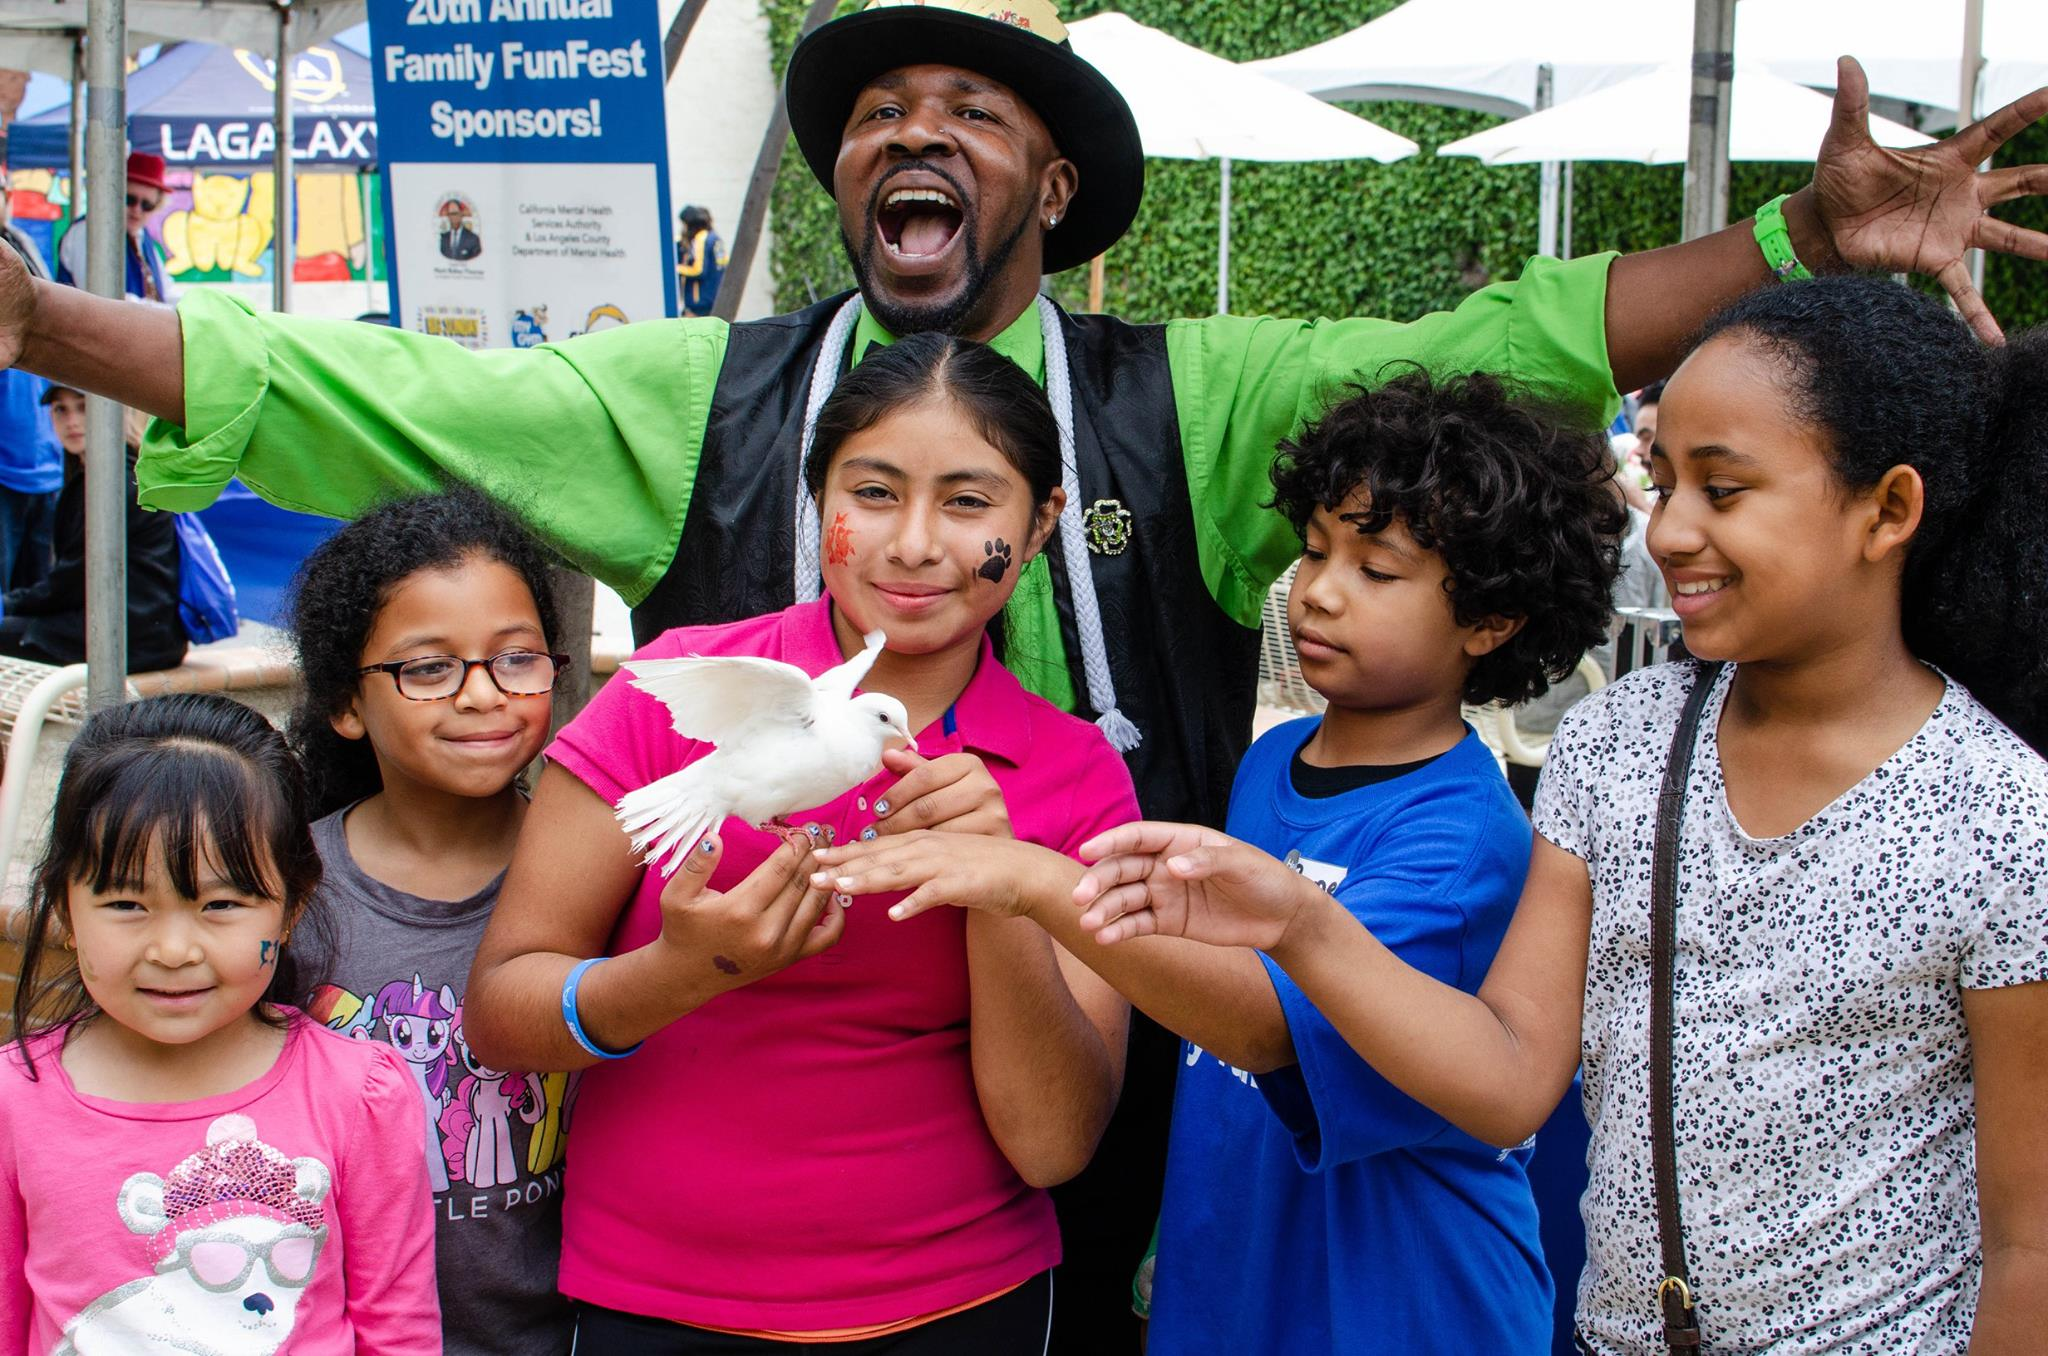 LACGC's 21st Annual Family FunFest